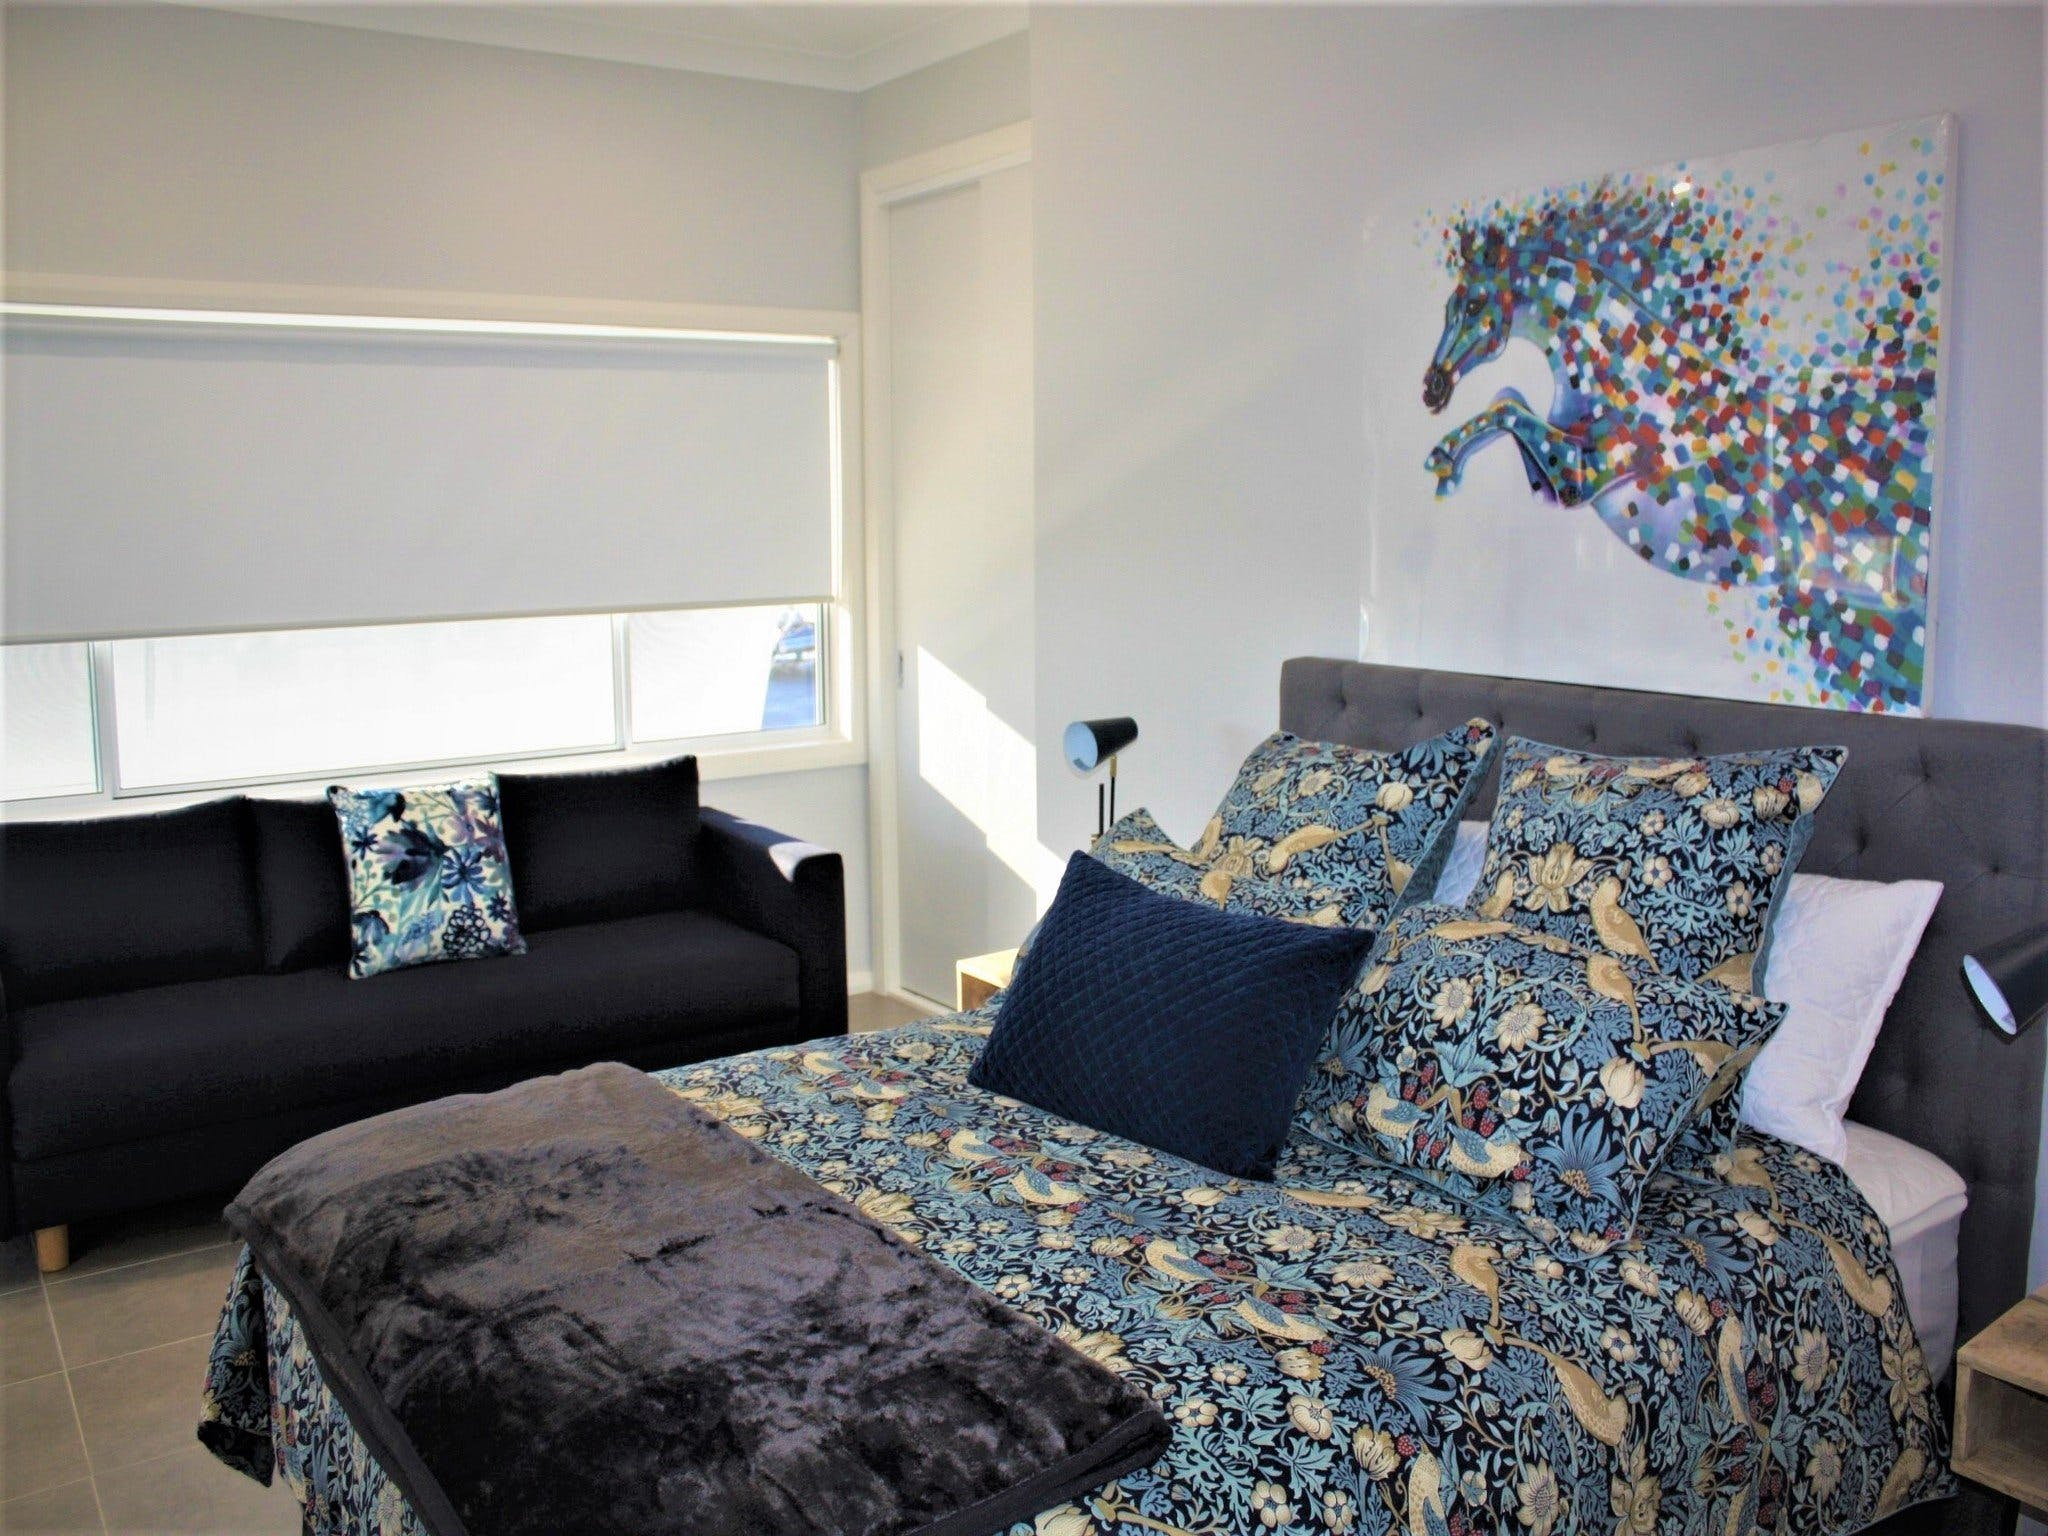 Coolah Shorts - Self Contained Apartments - Accommodation in Brisbane